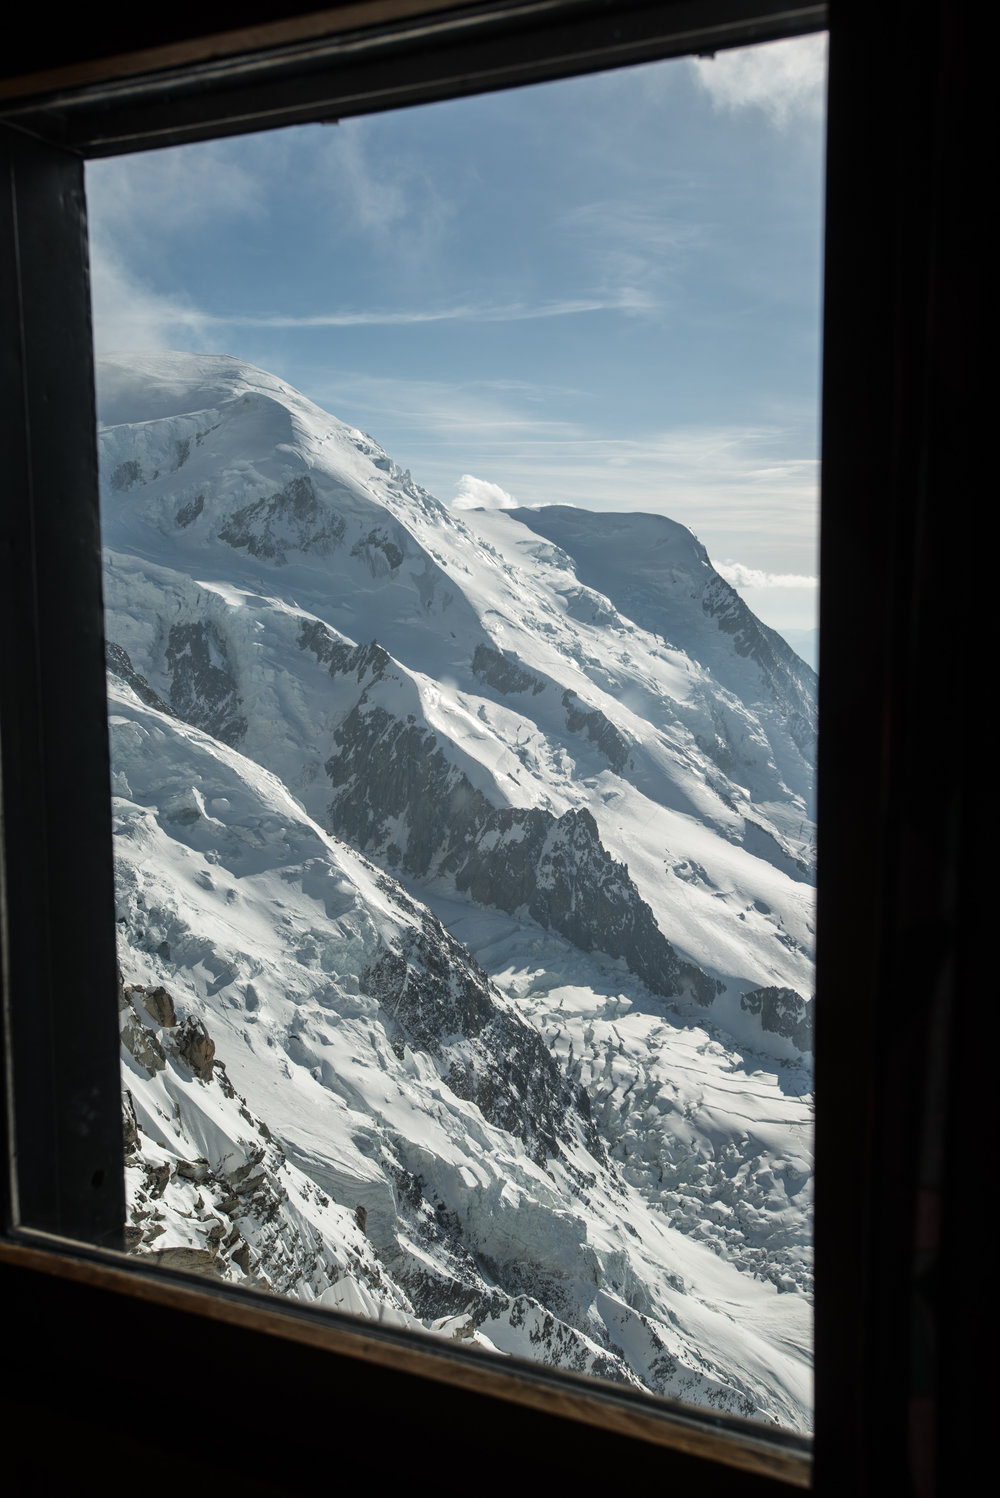 The view from your hut room window